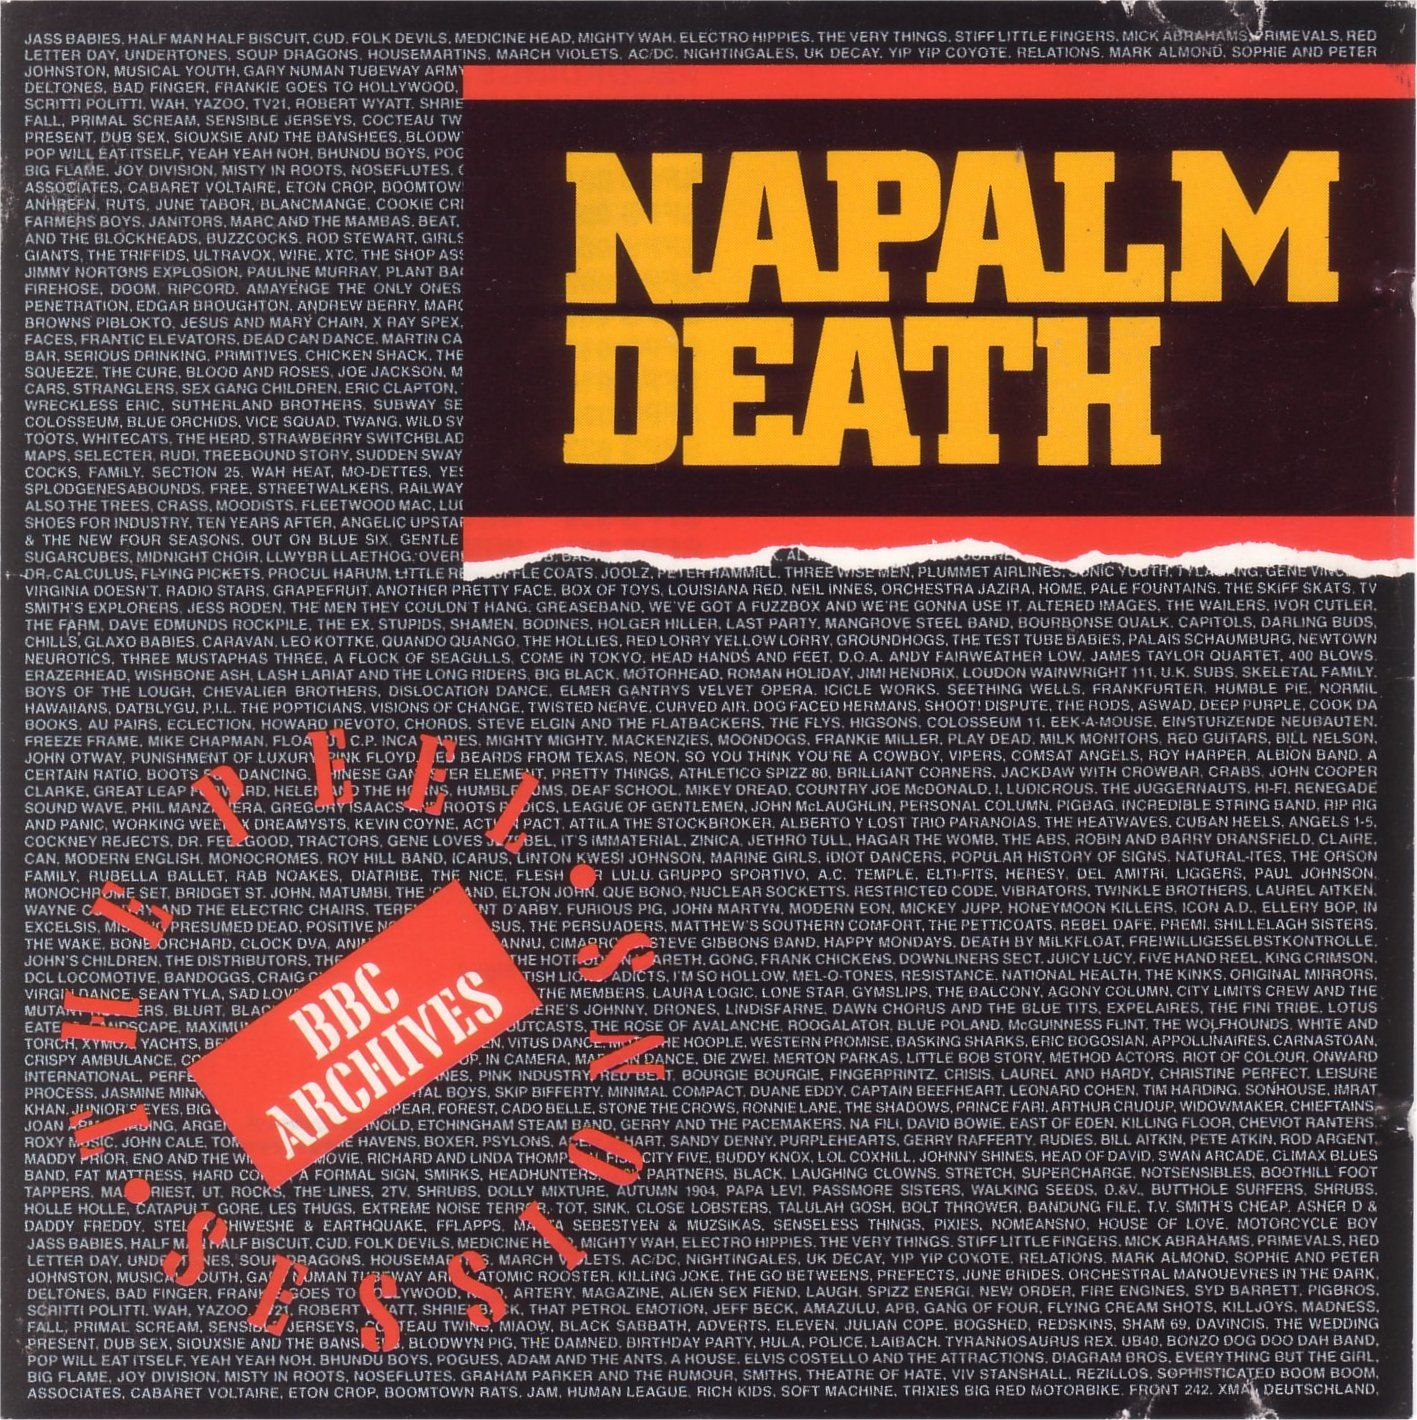 Napalm Death Demo 1985 - Live 1988